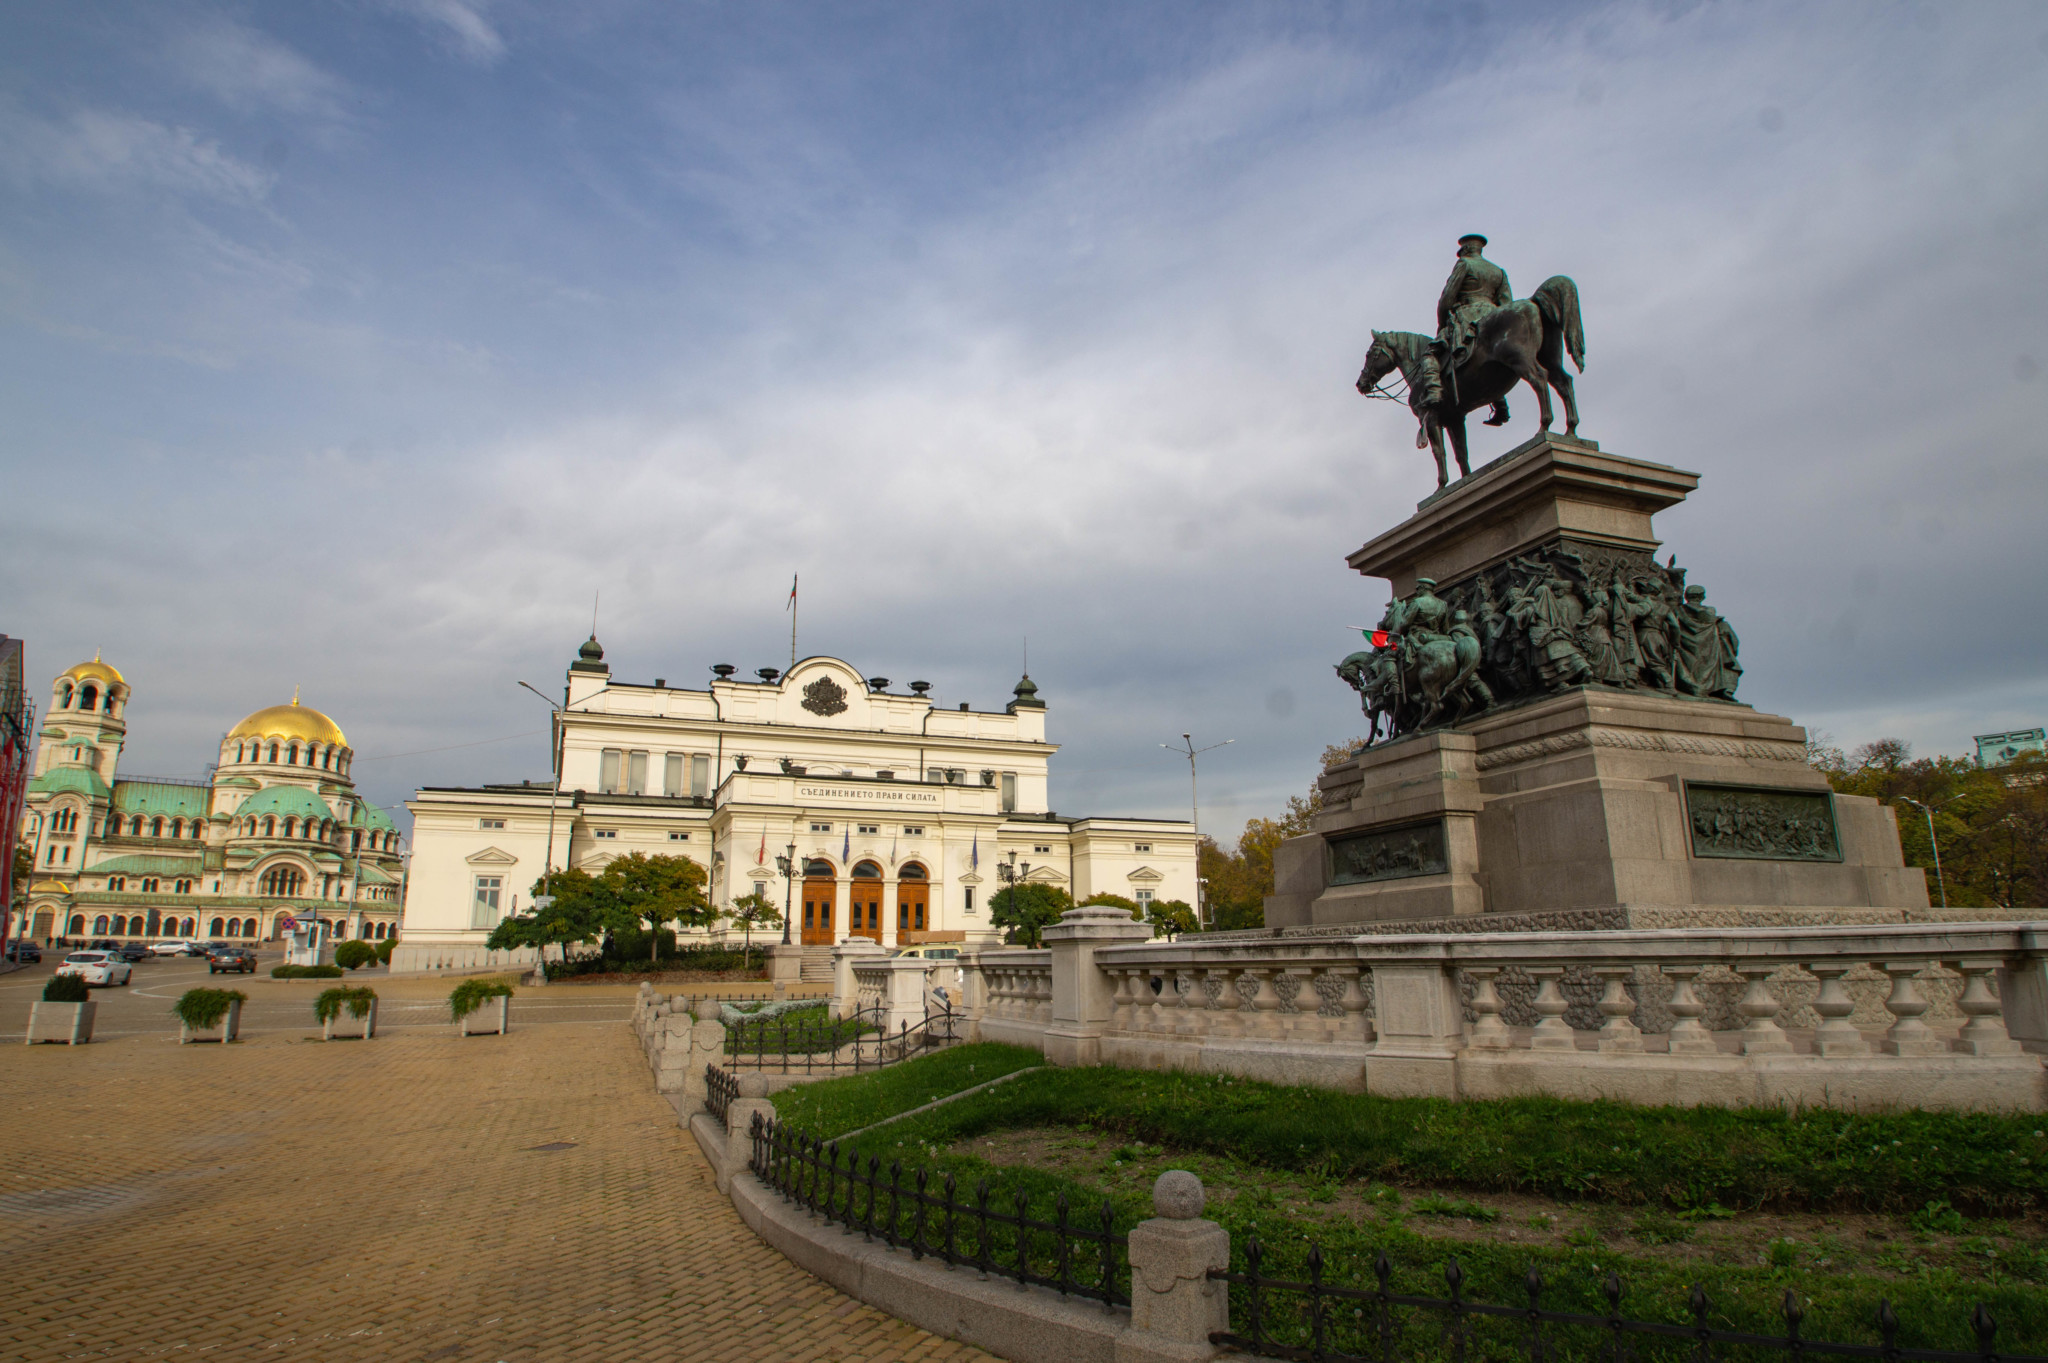 Parlament in Sofia in Bulgarien